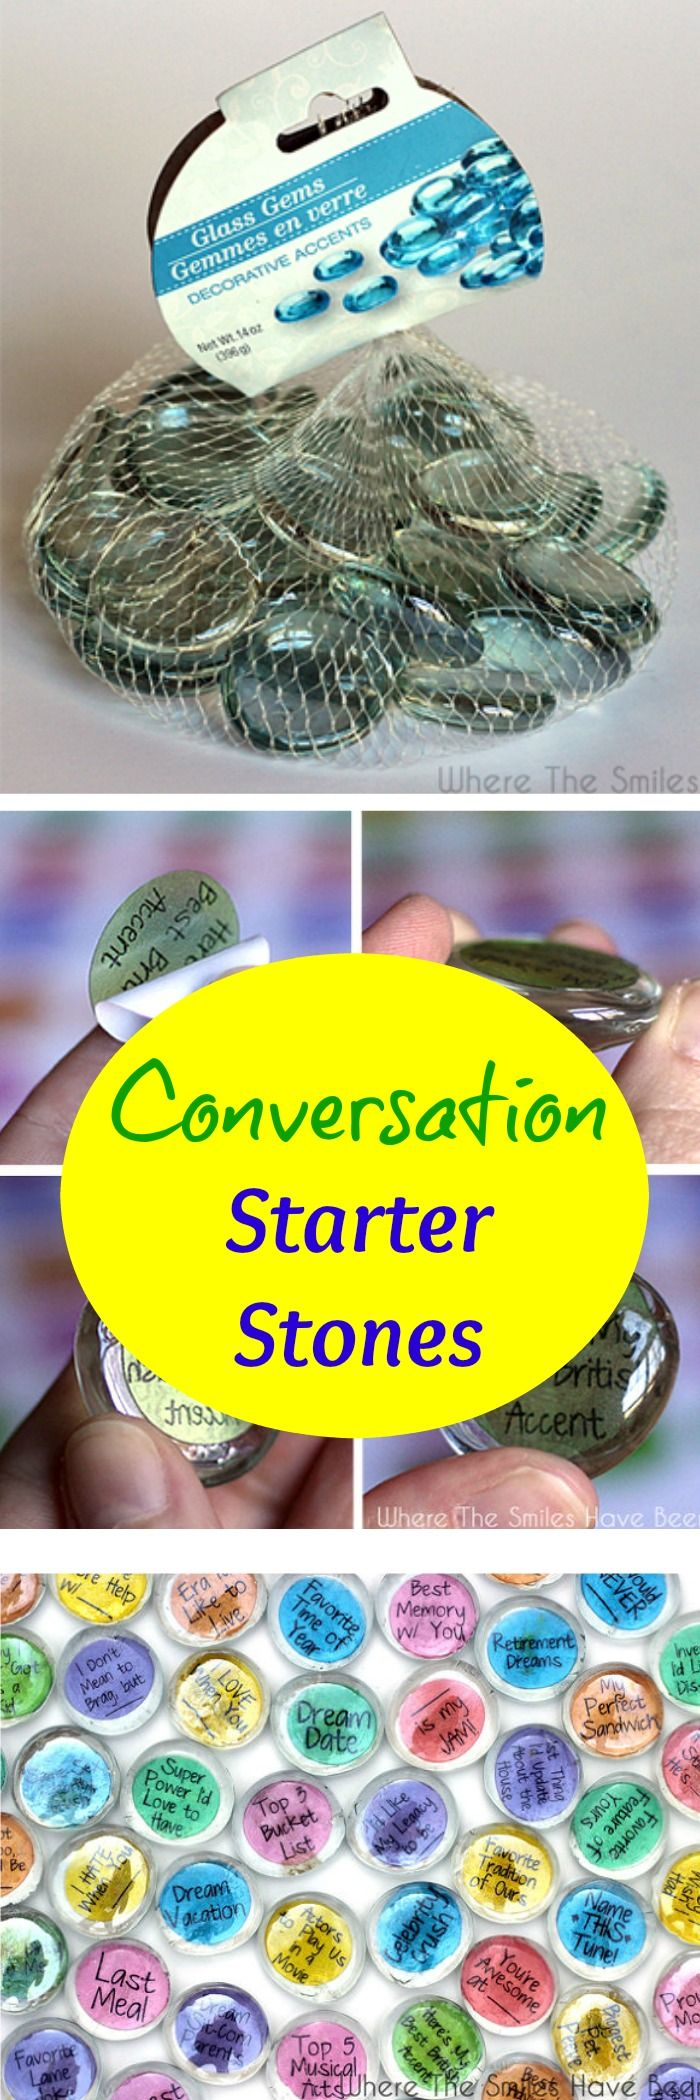 Make these and keep on hand for date nights ~ perfect to get the conversation started and to have some fun.